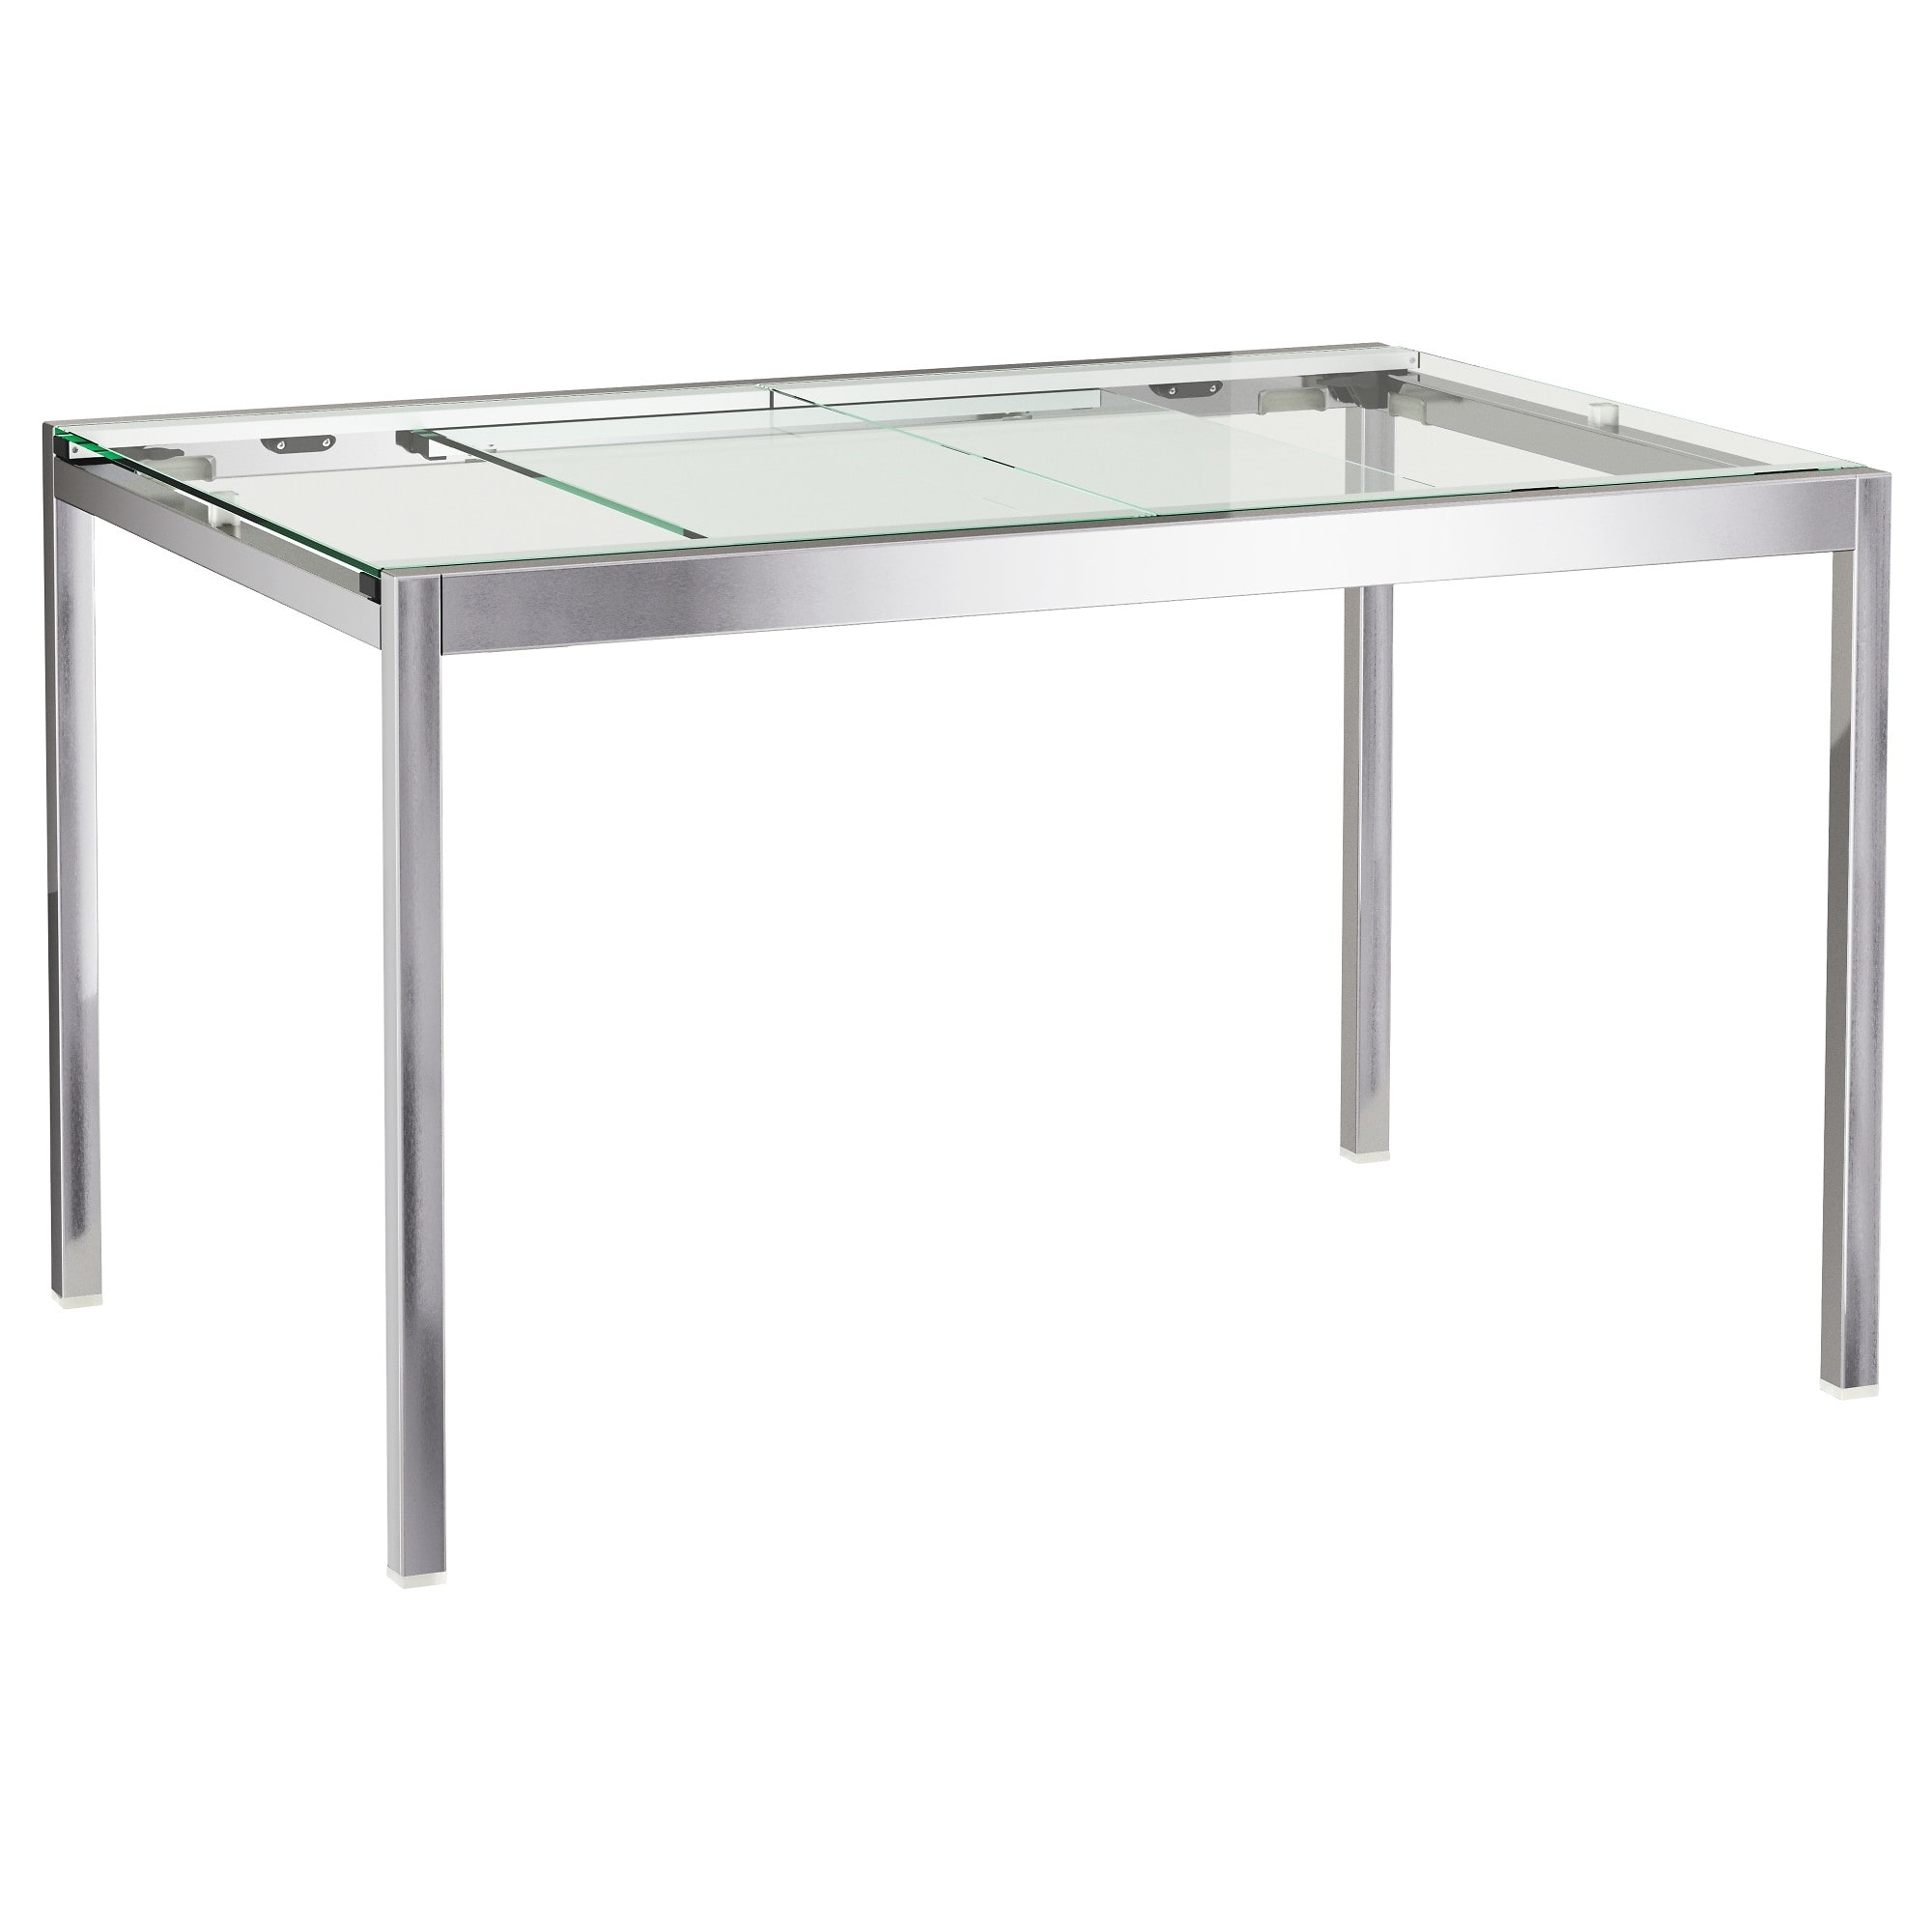 Ikea Pertaining To Latest White Extendable Dining Tables (Gallery 23 of 25)